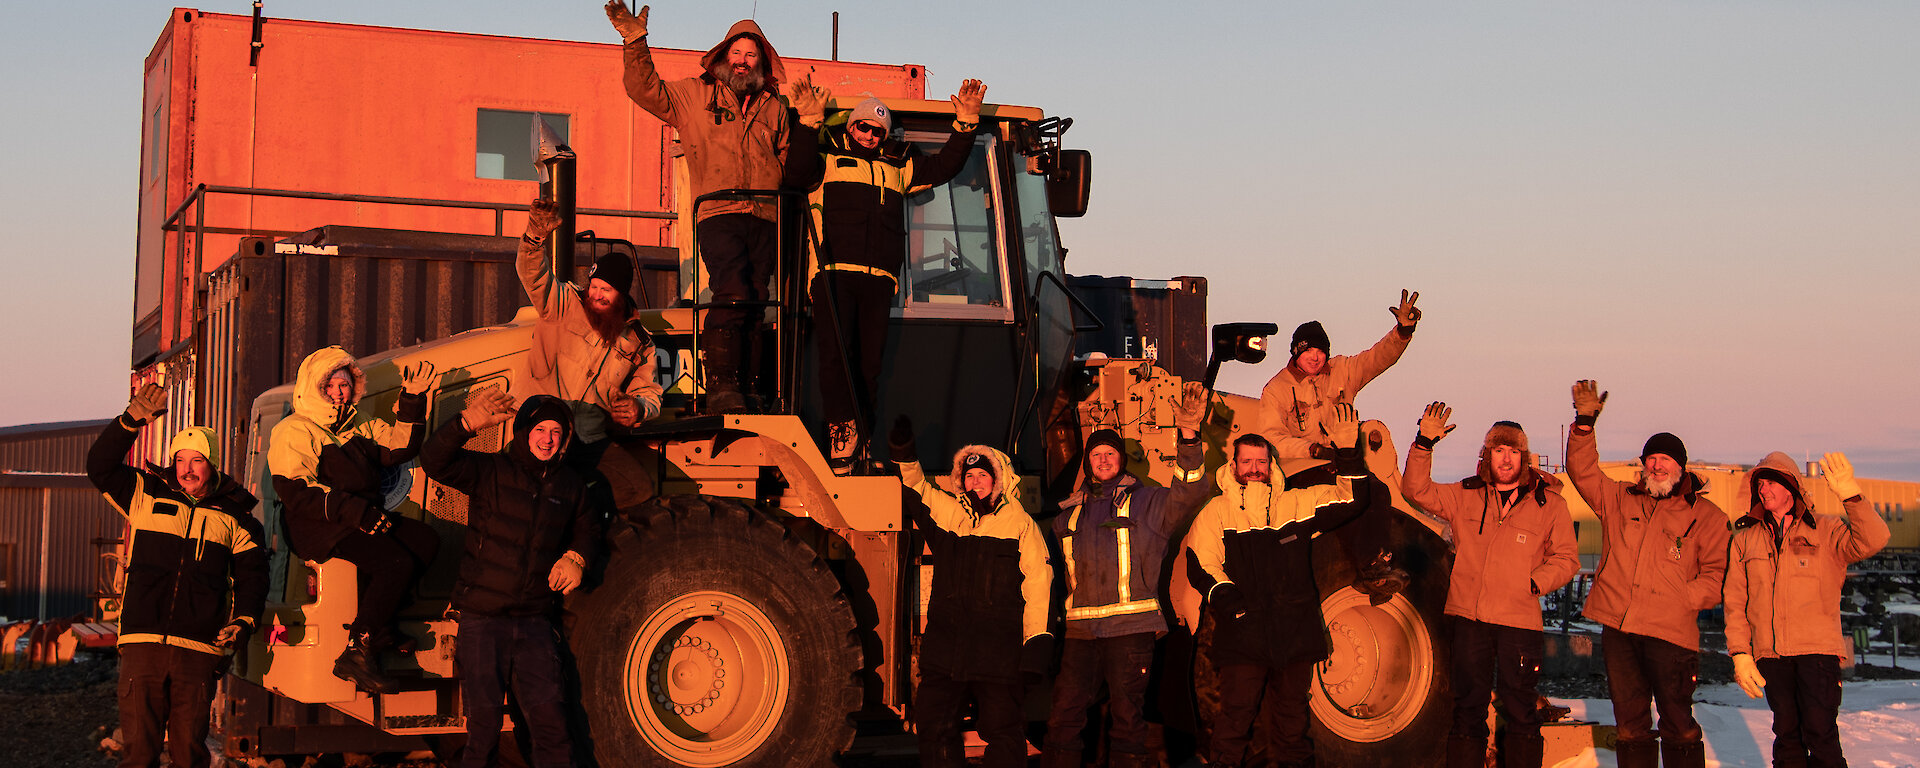 Group of expeditioners standing near loader waving at the camera at sunset